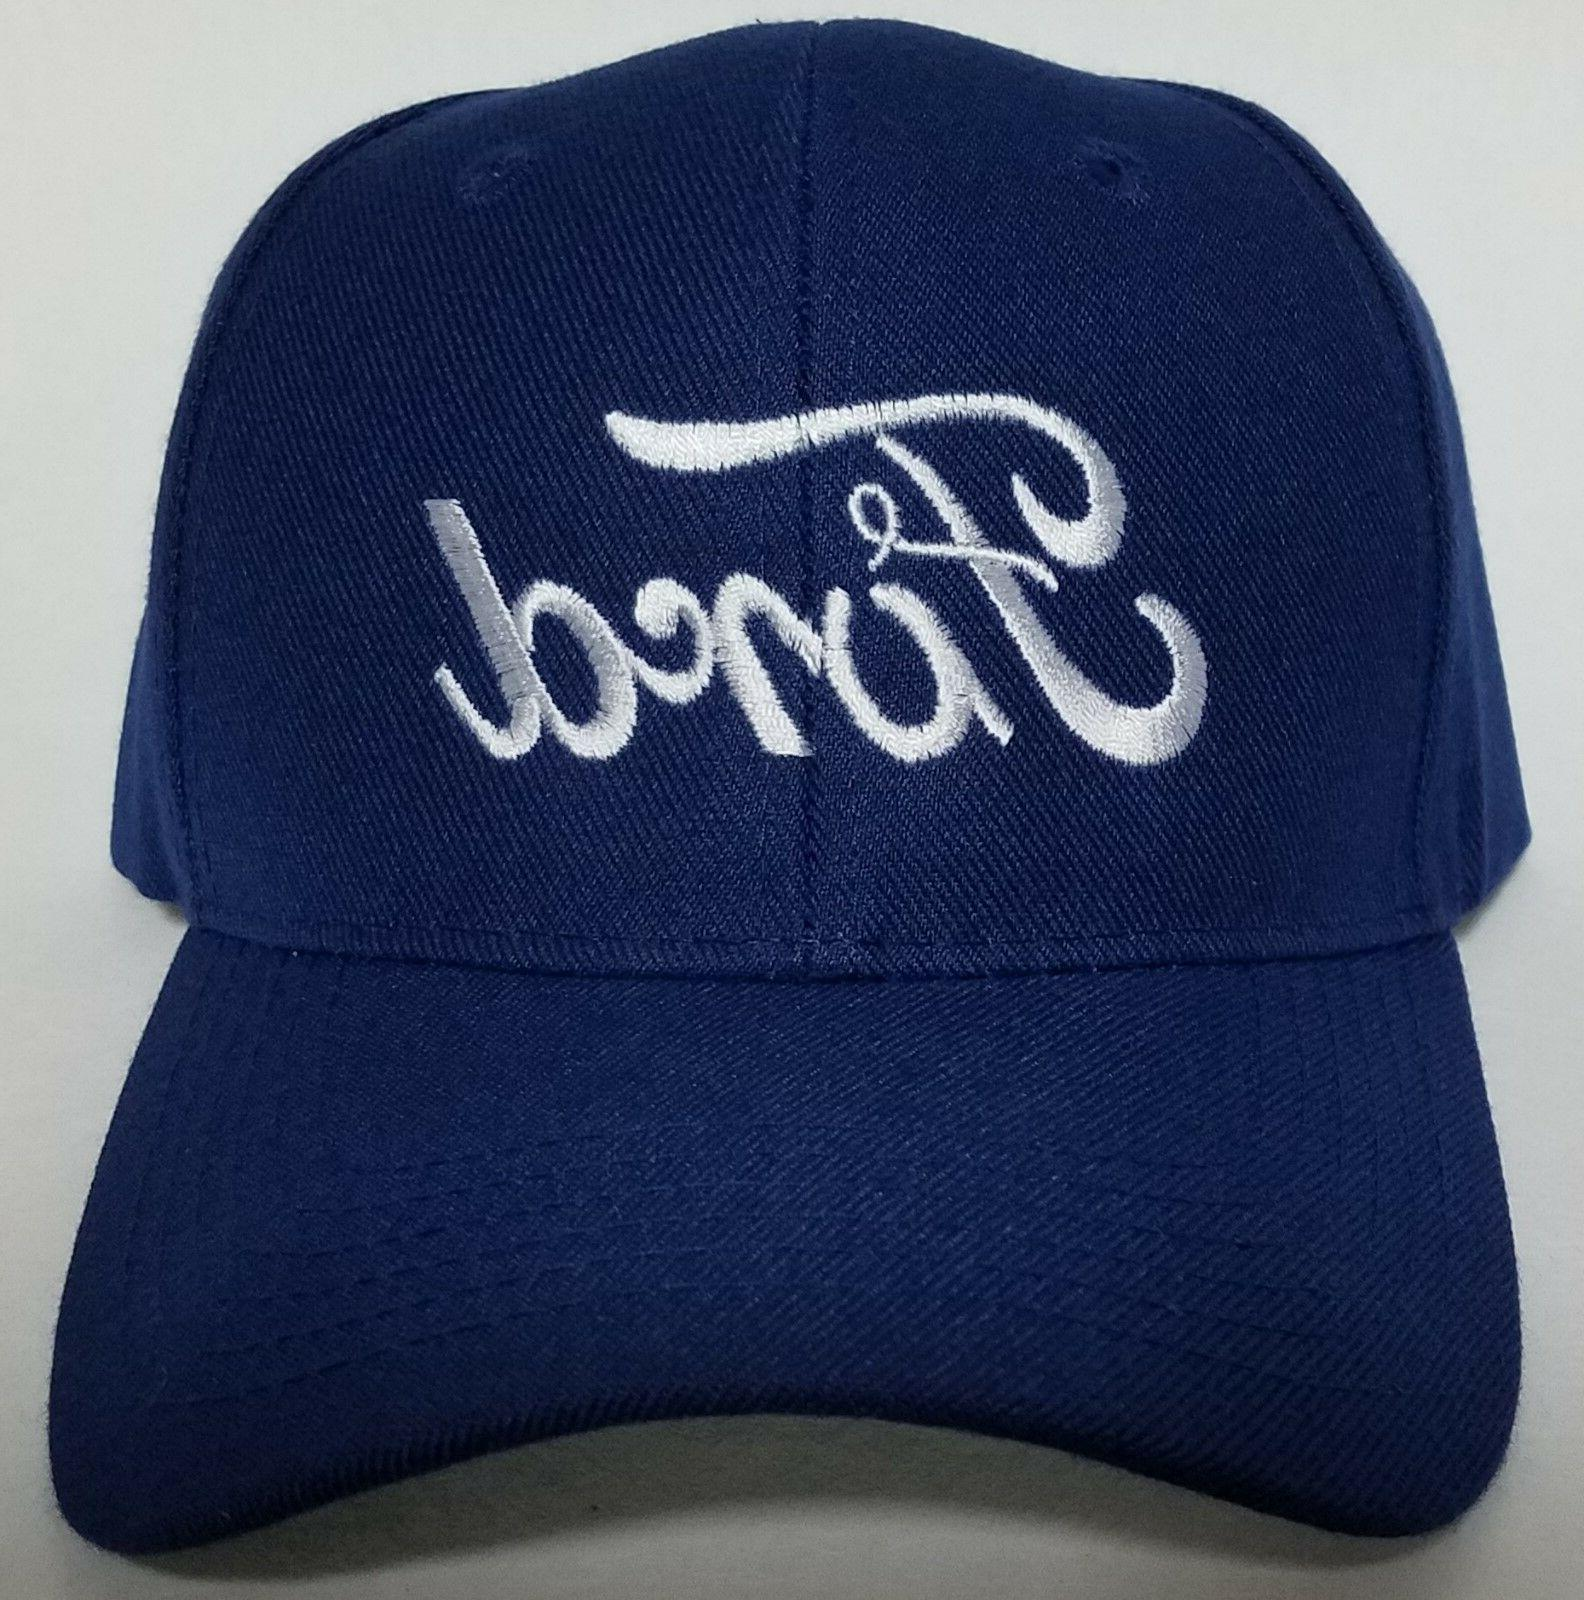 FORD Embroidered Baseball Hat Cap Adjustable